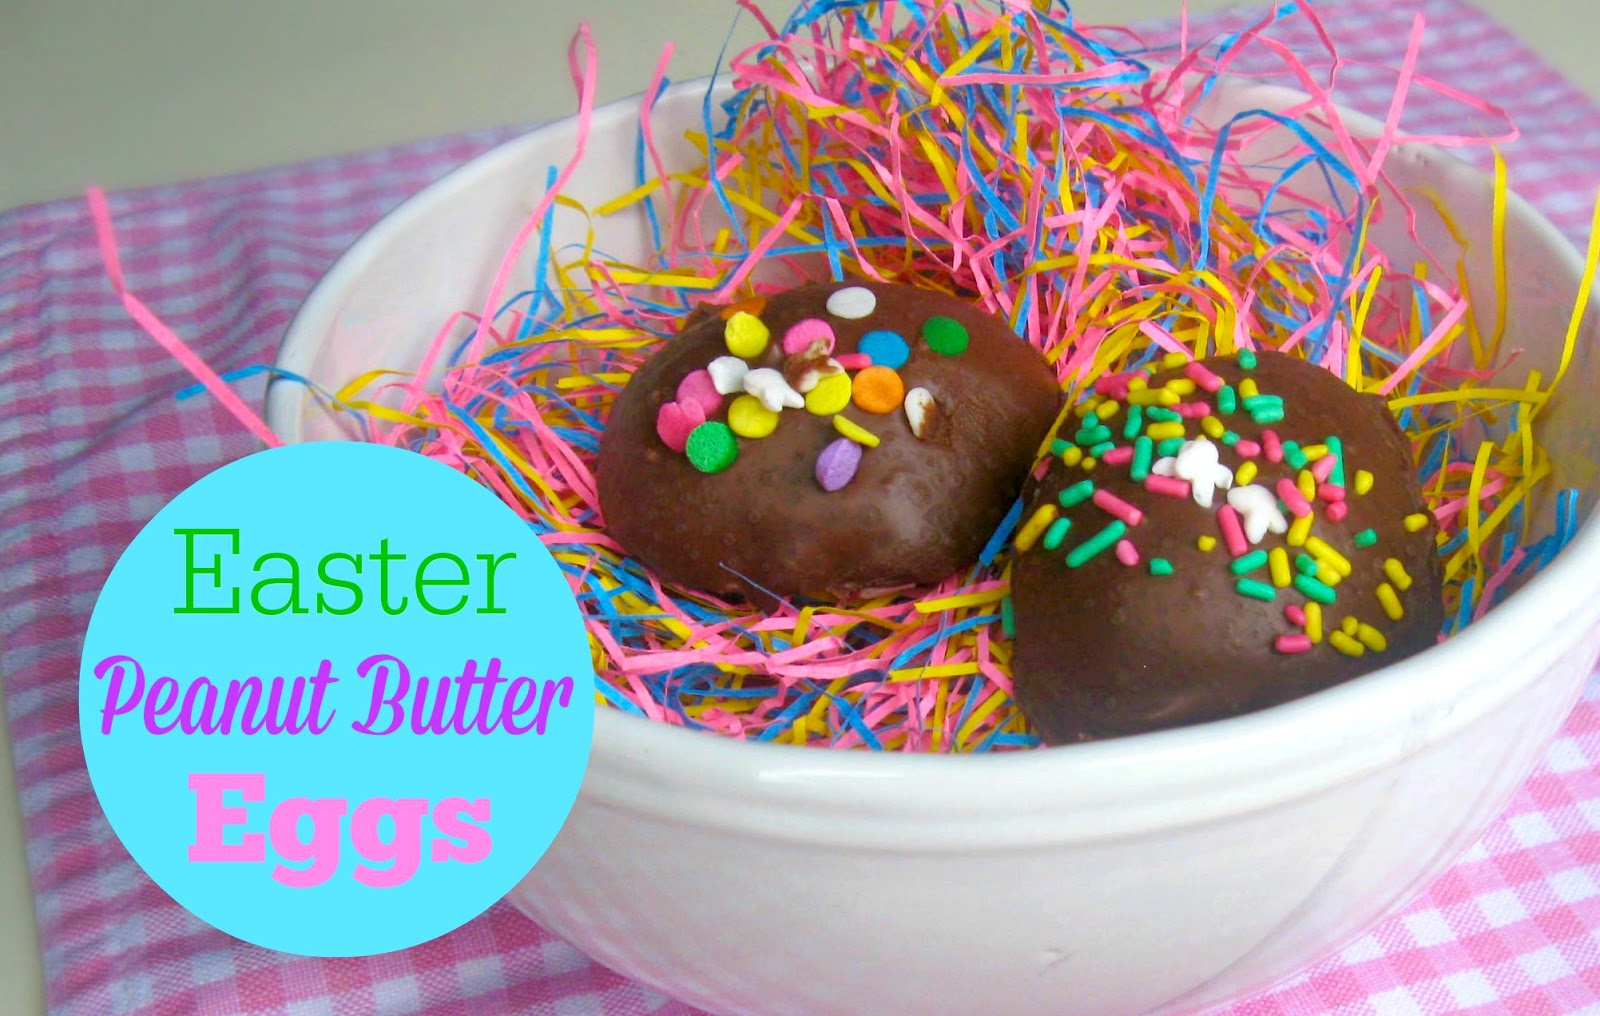 ... Covered Easter Peanut Butter Eggs {Copycat Reese's Peanut Butter Eggs